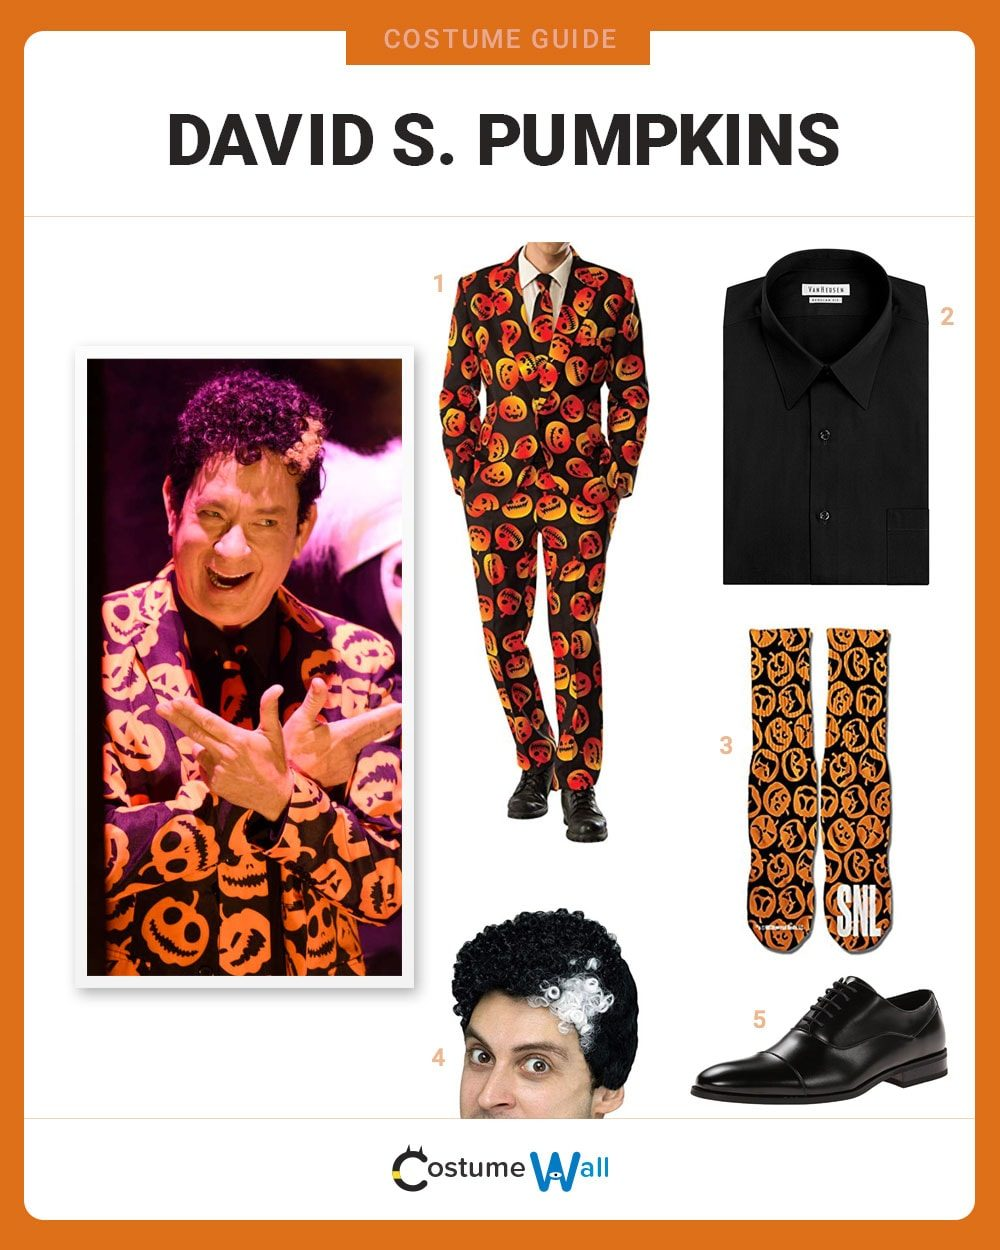 David S. Pumpkins Costume Guide